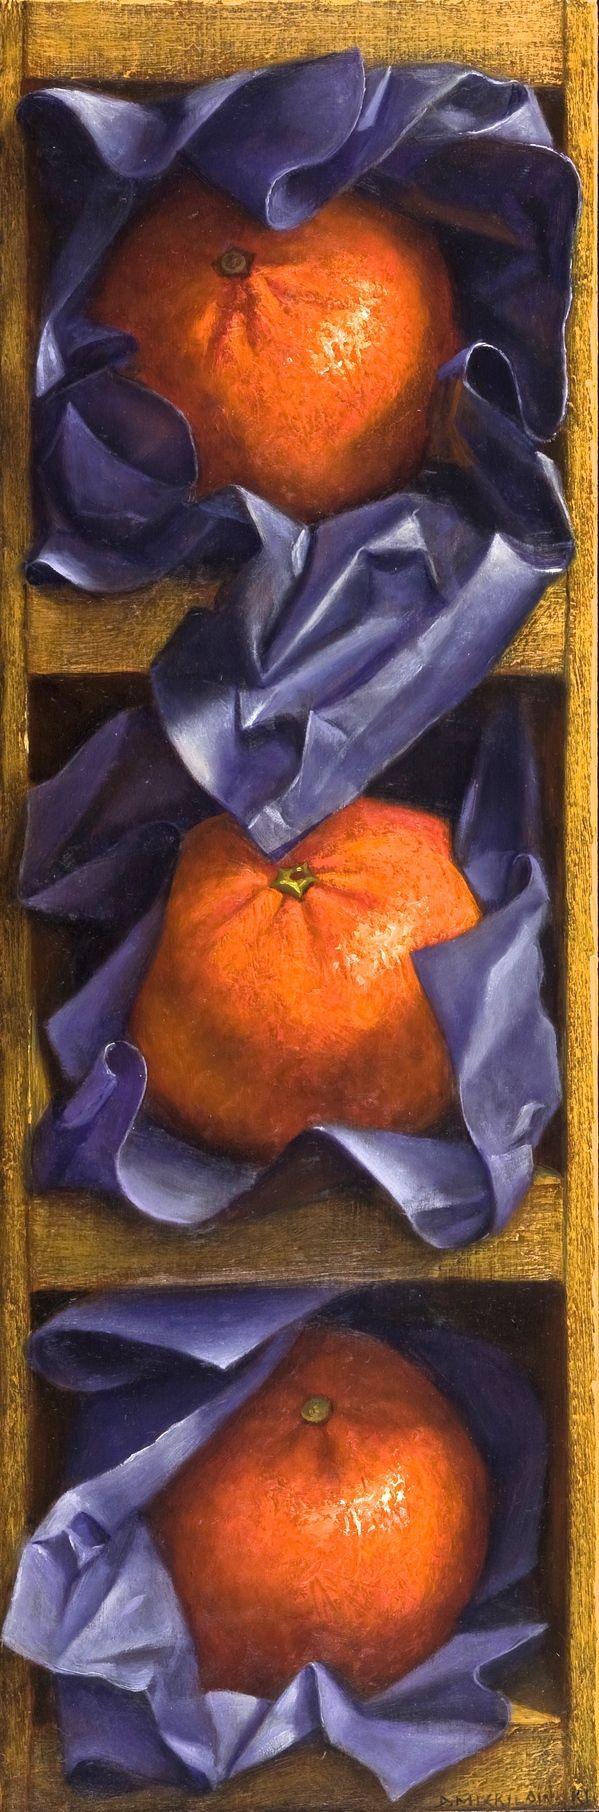 Oranges with Purple Tissue by Denise Mickilowski